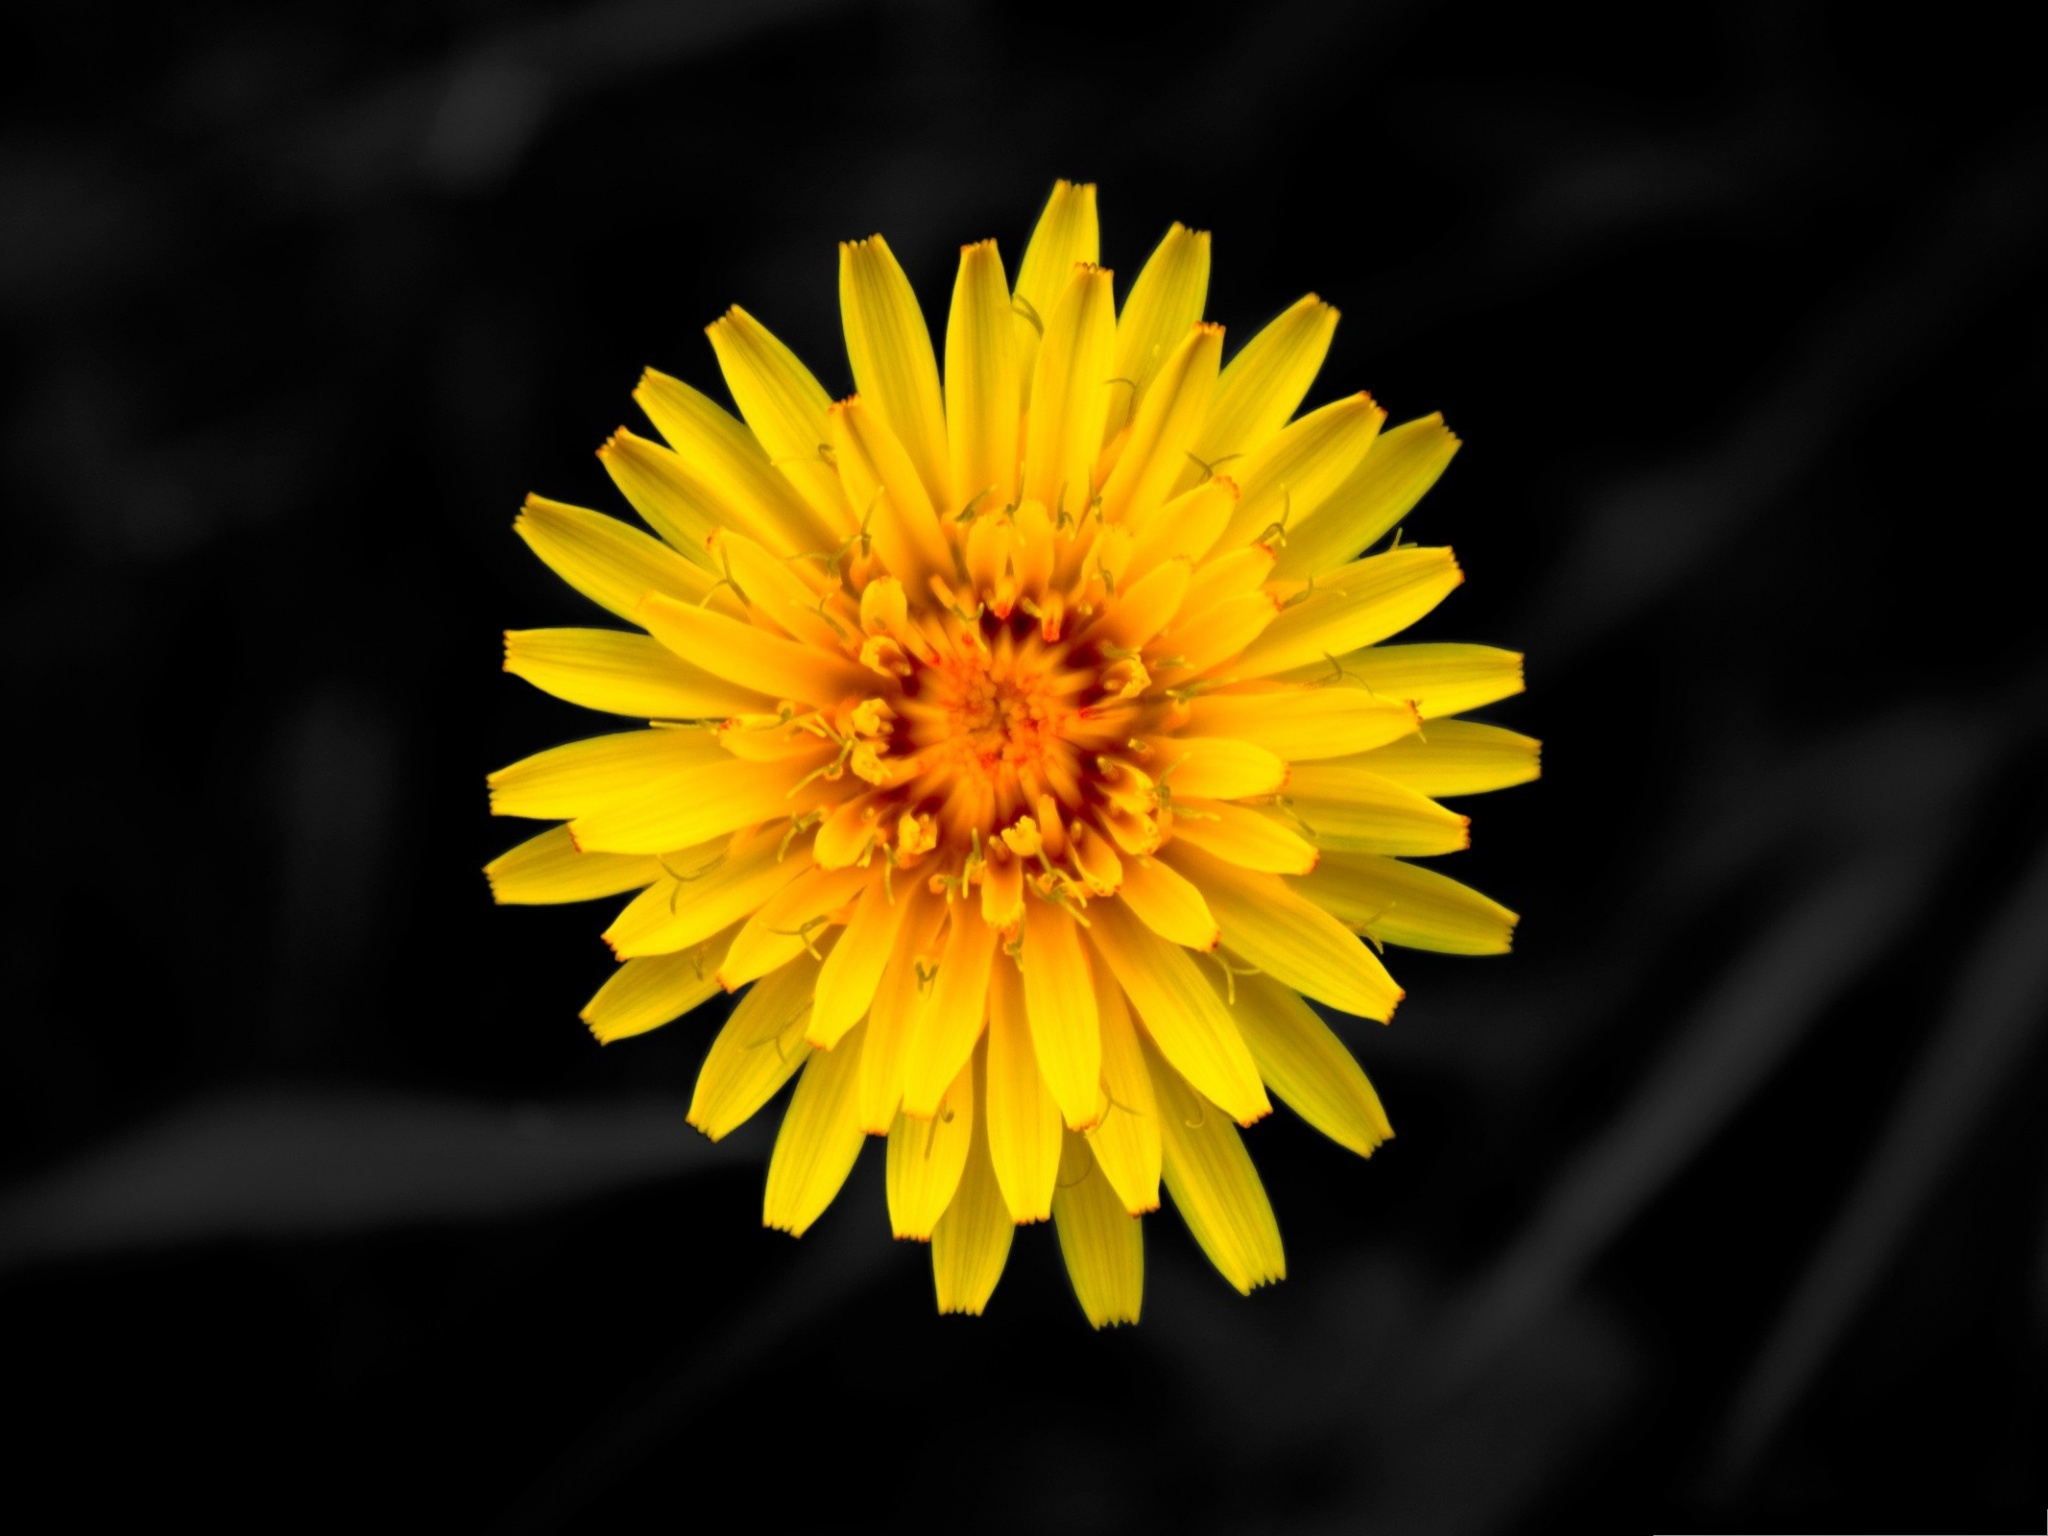 click to free download the wallpaper--Dandelion Flowers Picture, Yellow Blooming Flower, Petals Like Long Arms 2048X1536 free wallpaper download